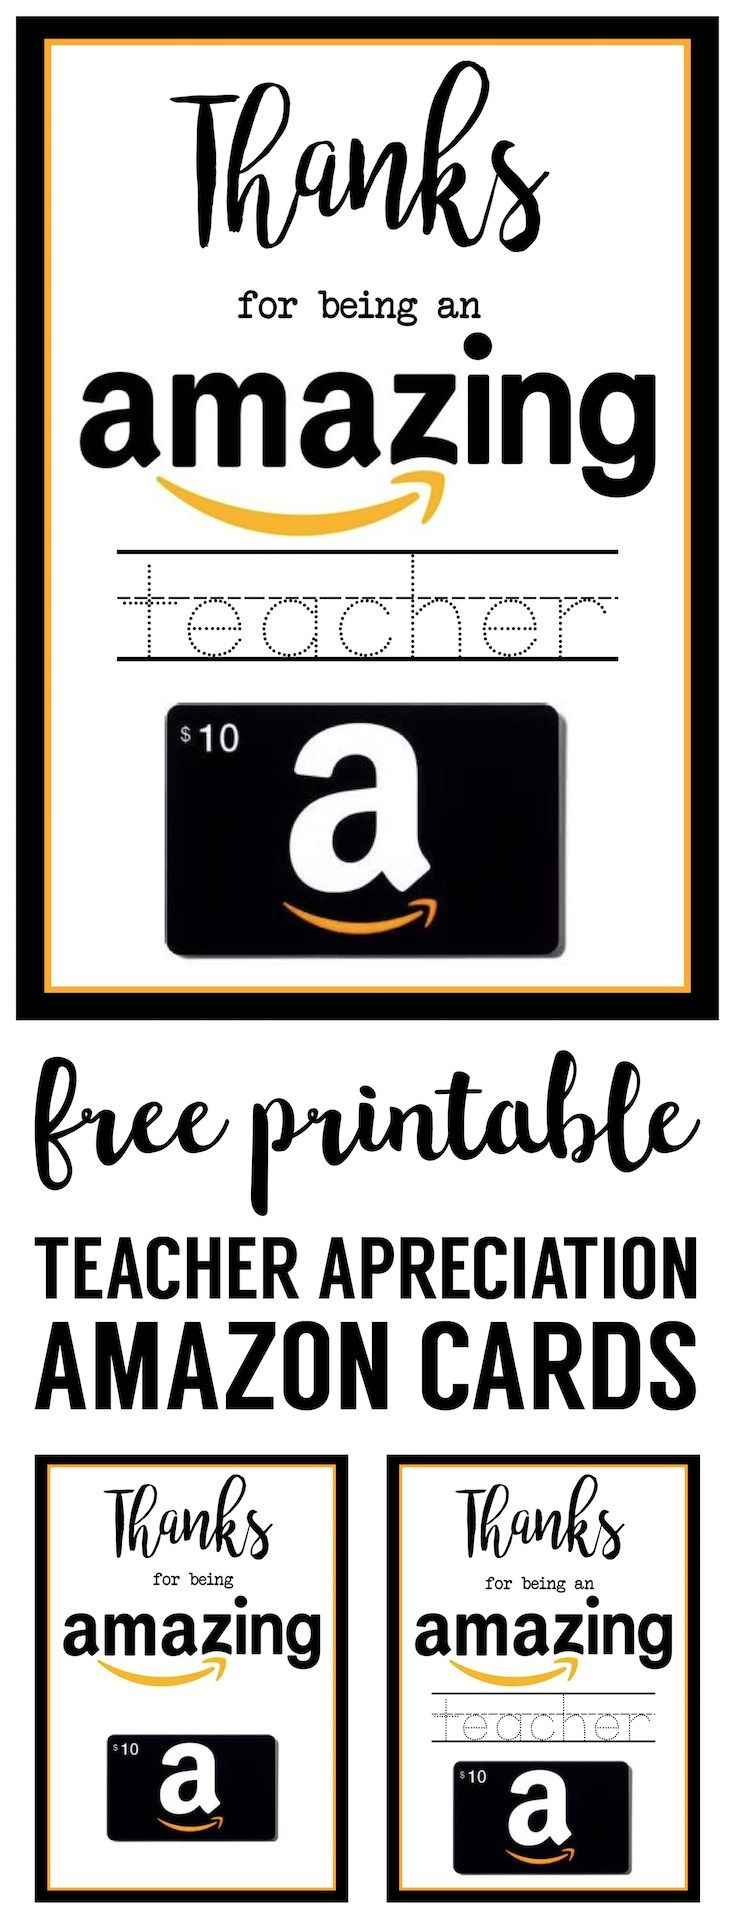 Teacher Appreciation Amazon Card free printable. Print this card for your kids end of the year teacher gift. Amazing amazon DIY card gift.